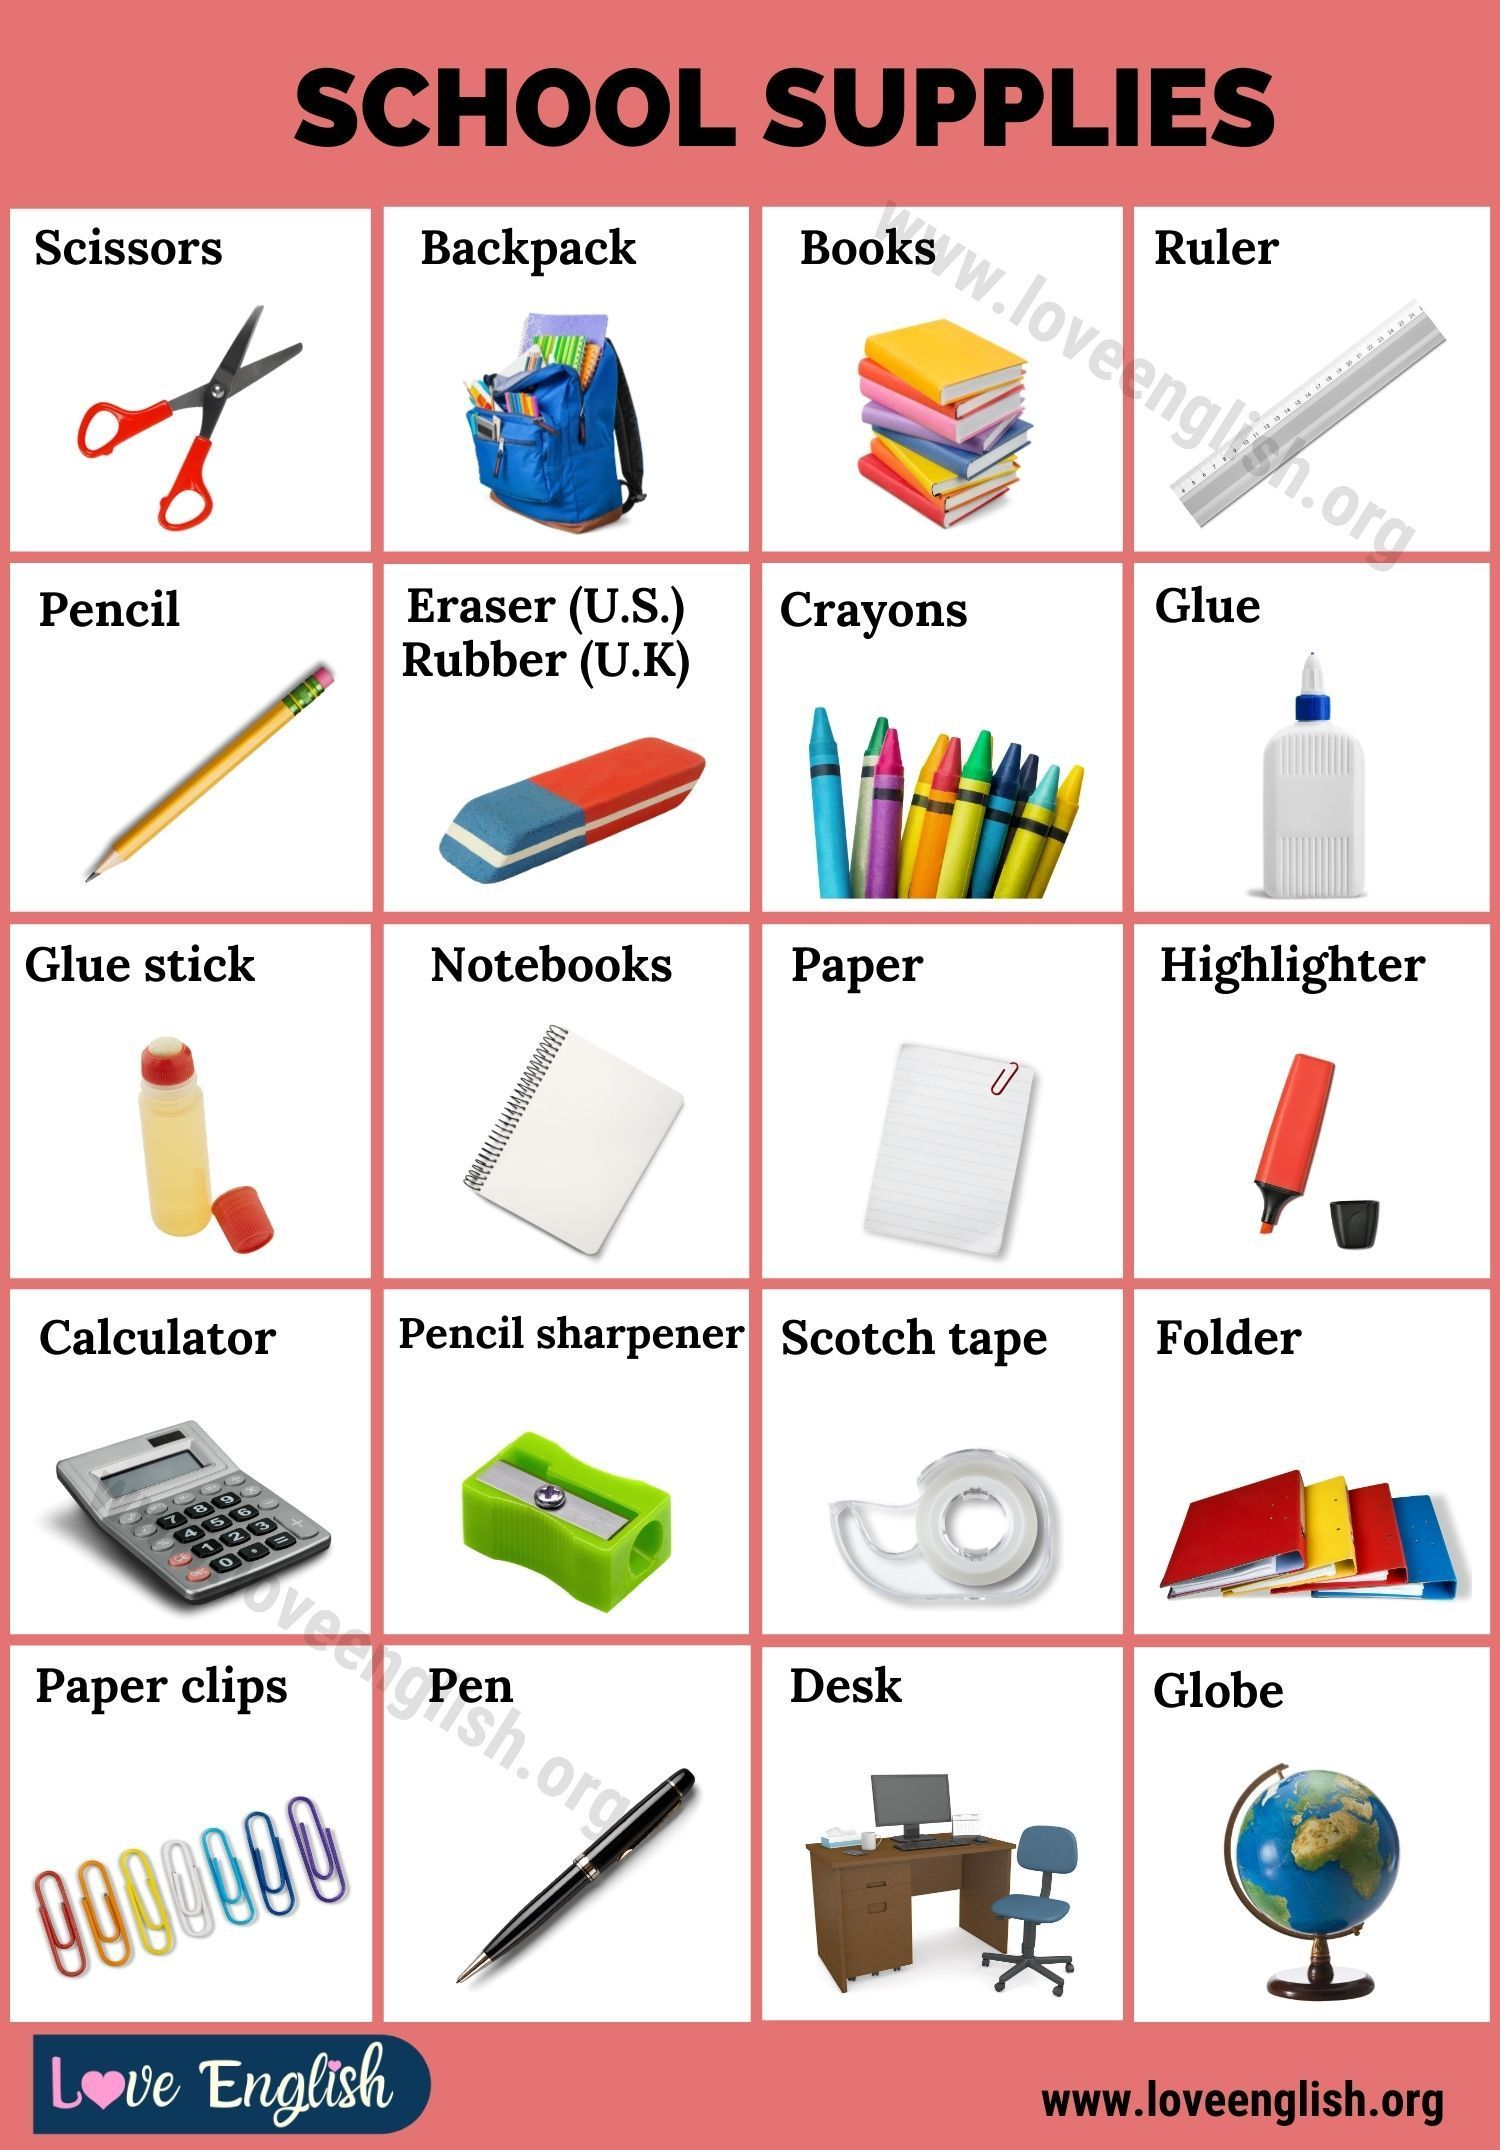 School Supplies 50 Essential School Things For Students Love English Learning English For Kids English Vocabulary School Supplies